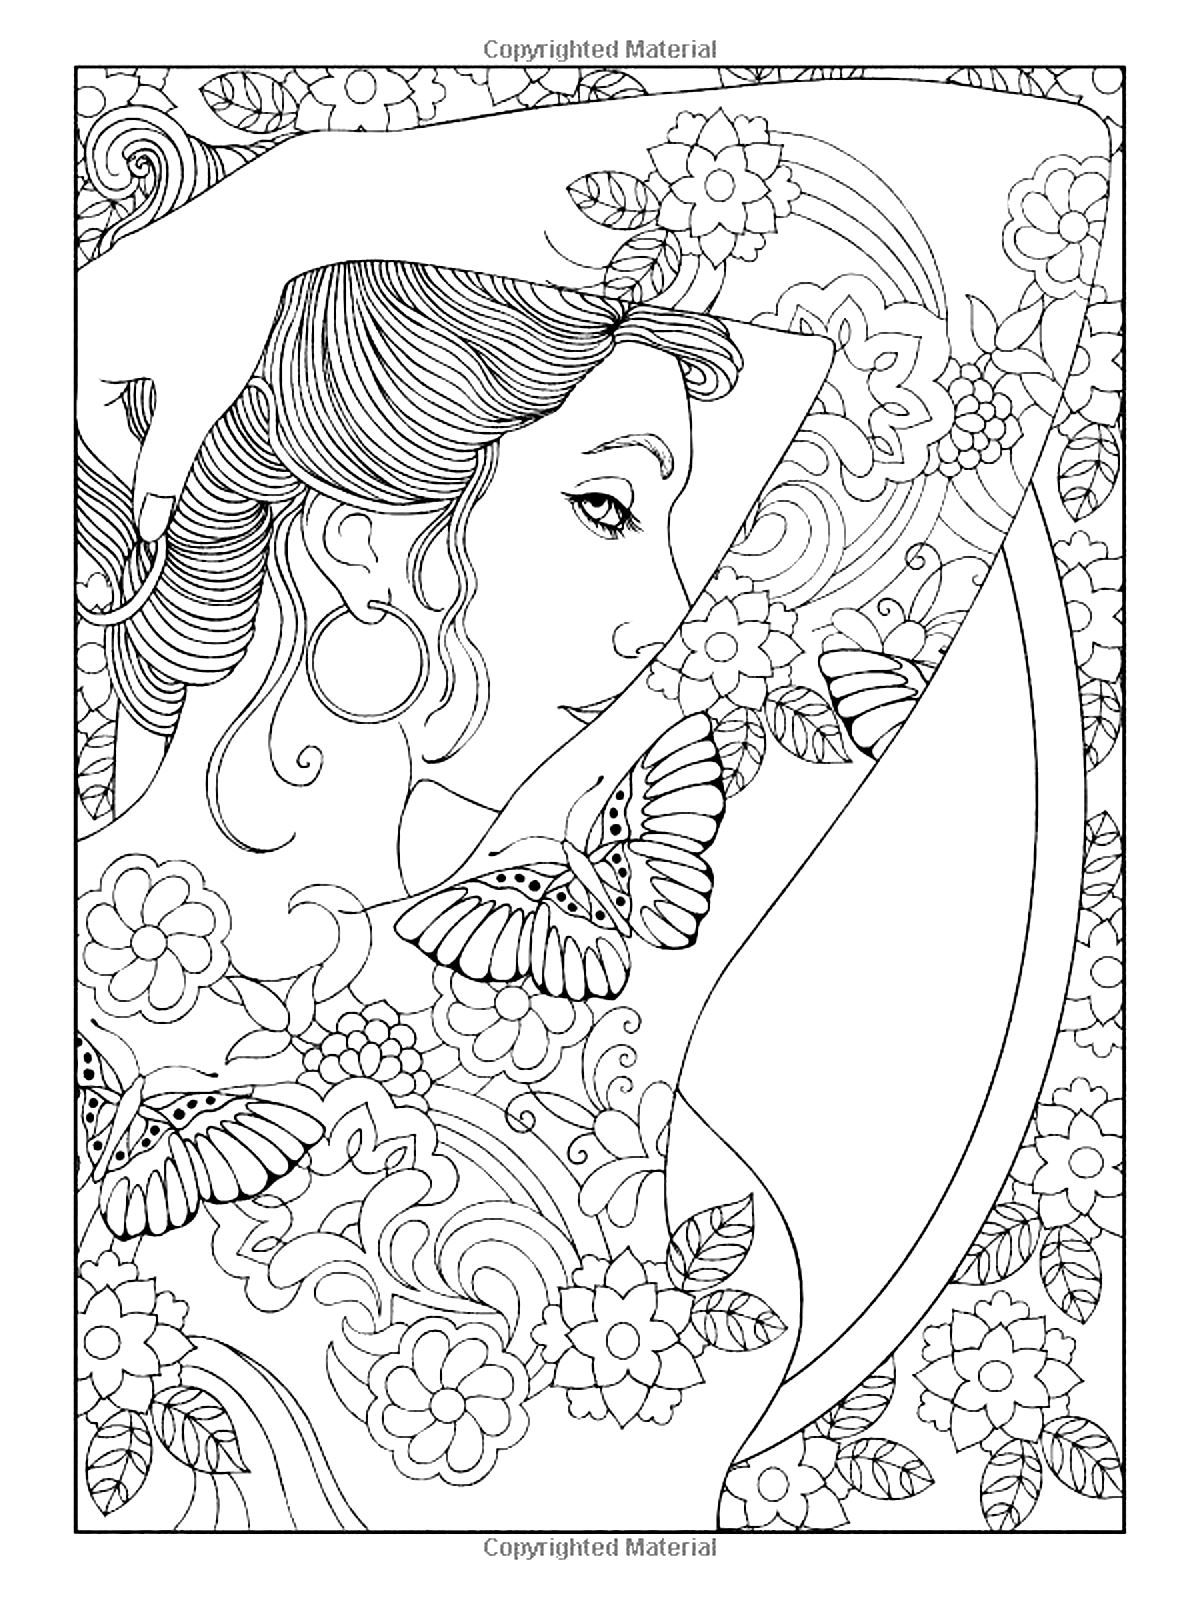 Disney coloring pages for adults - Disney Coloring Pages